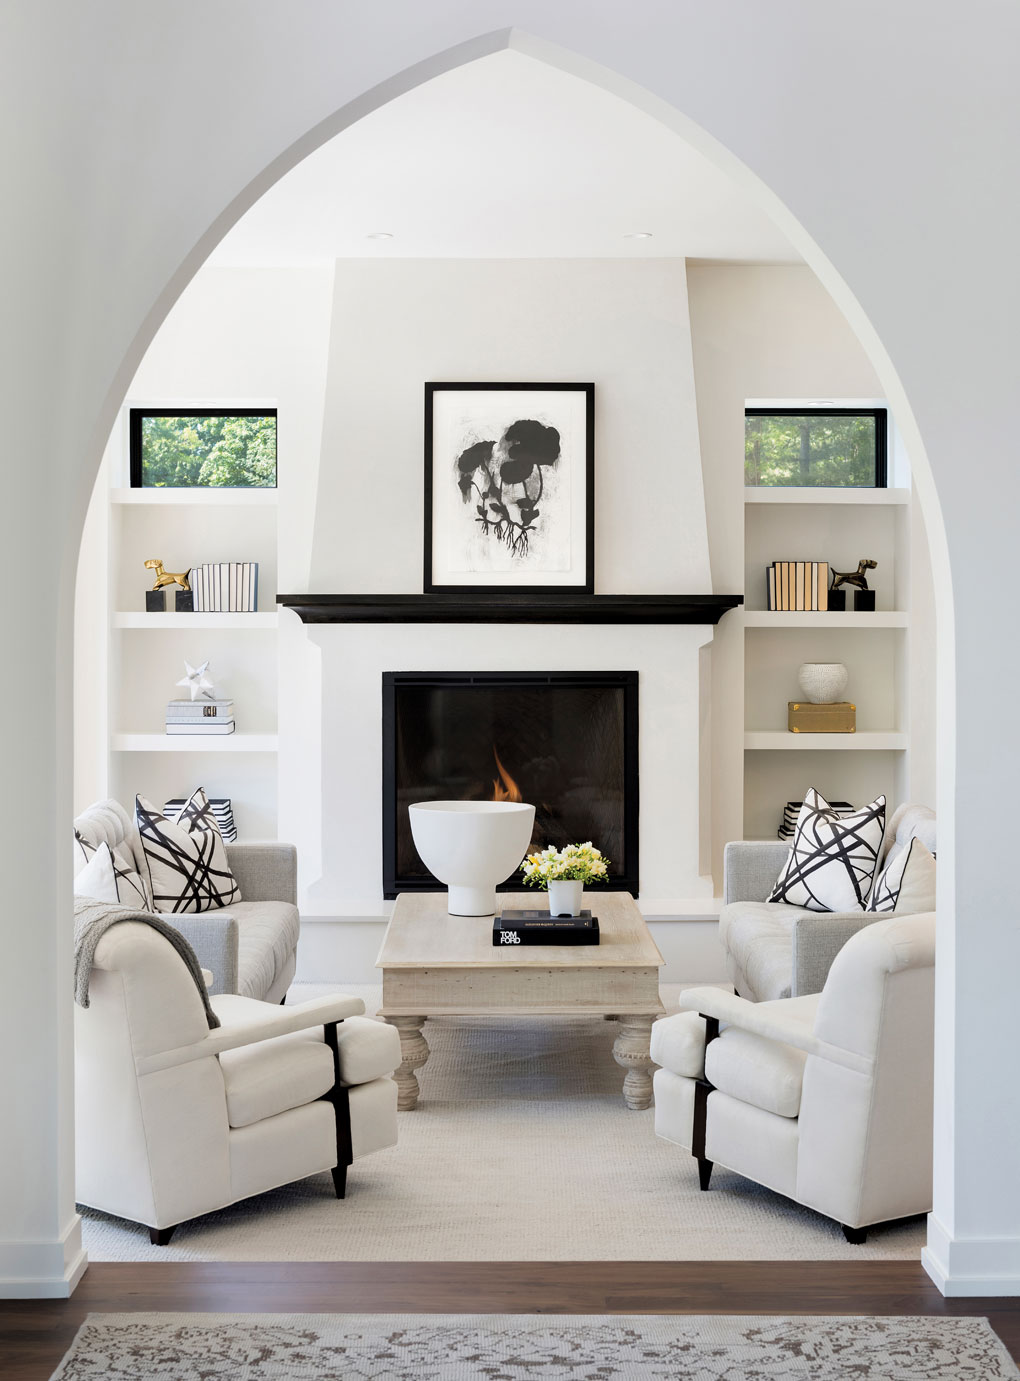 A living room with white furniture surrounding a coffee table set beside a fireplace is seen through an archway.